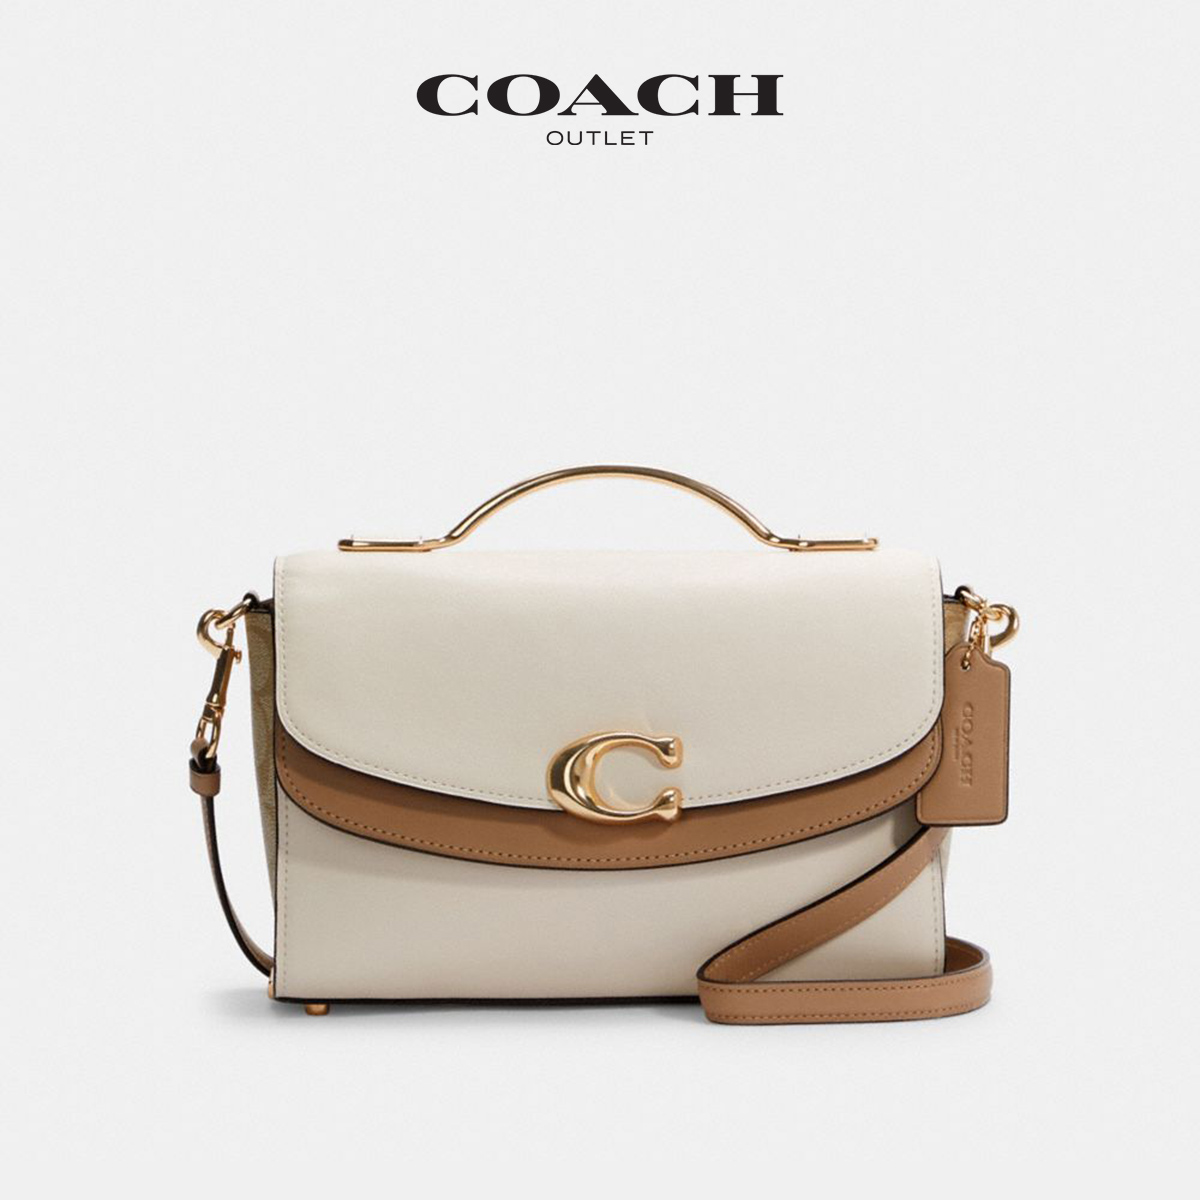 COACH / Coach Ms. Color Color Classic Sign Celia Double Flip Capsule Bag